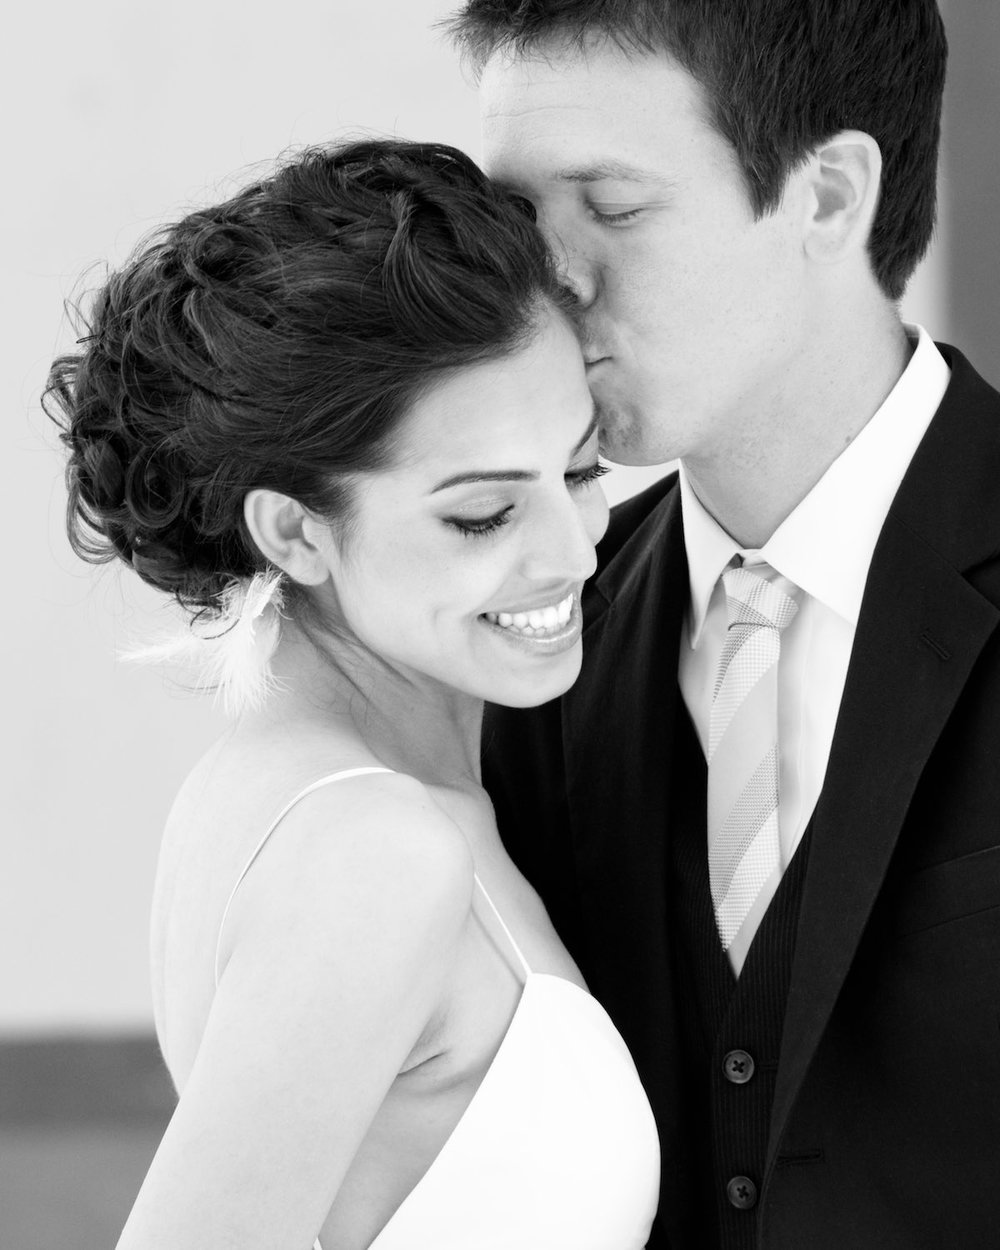 weddings-michal-pfeil-11.jpg